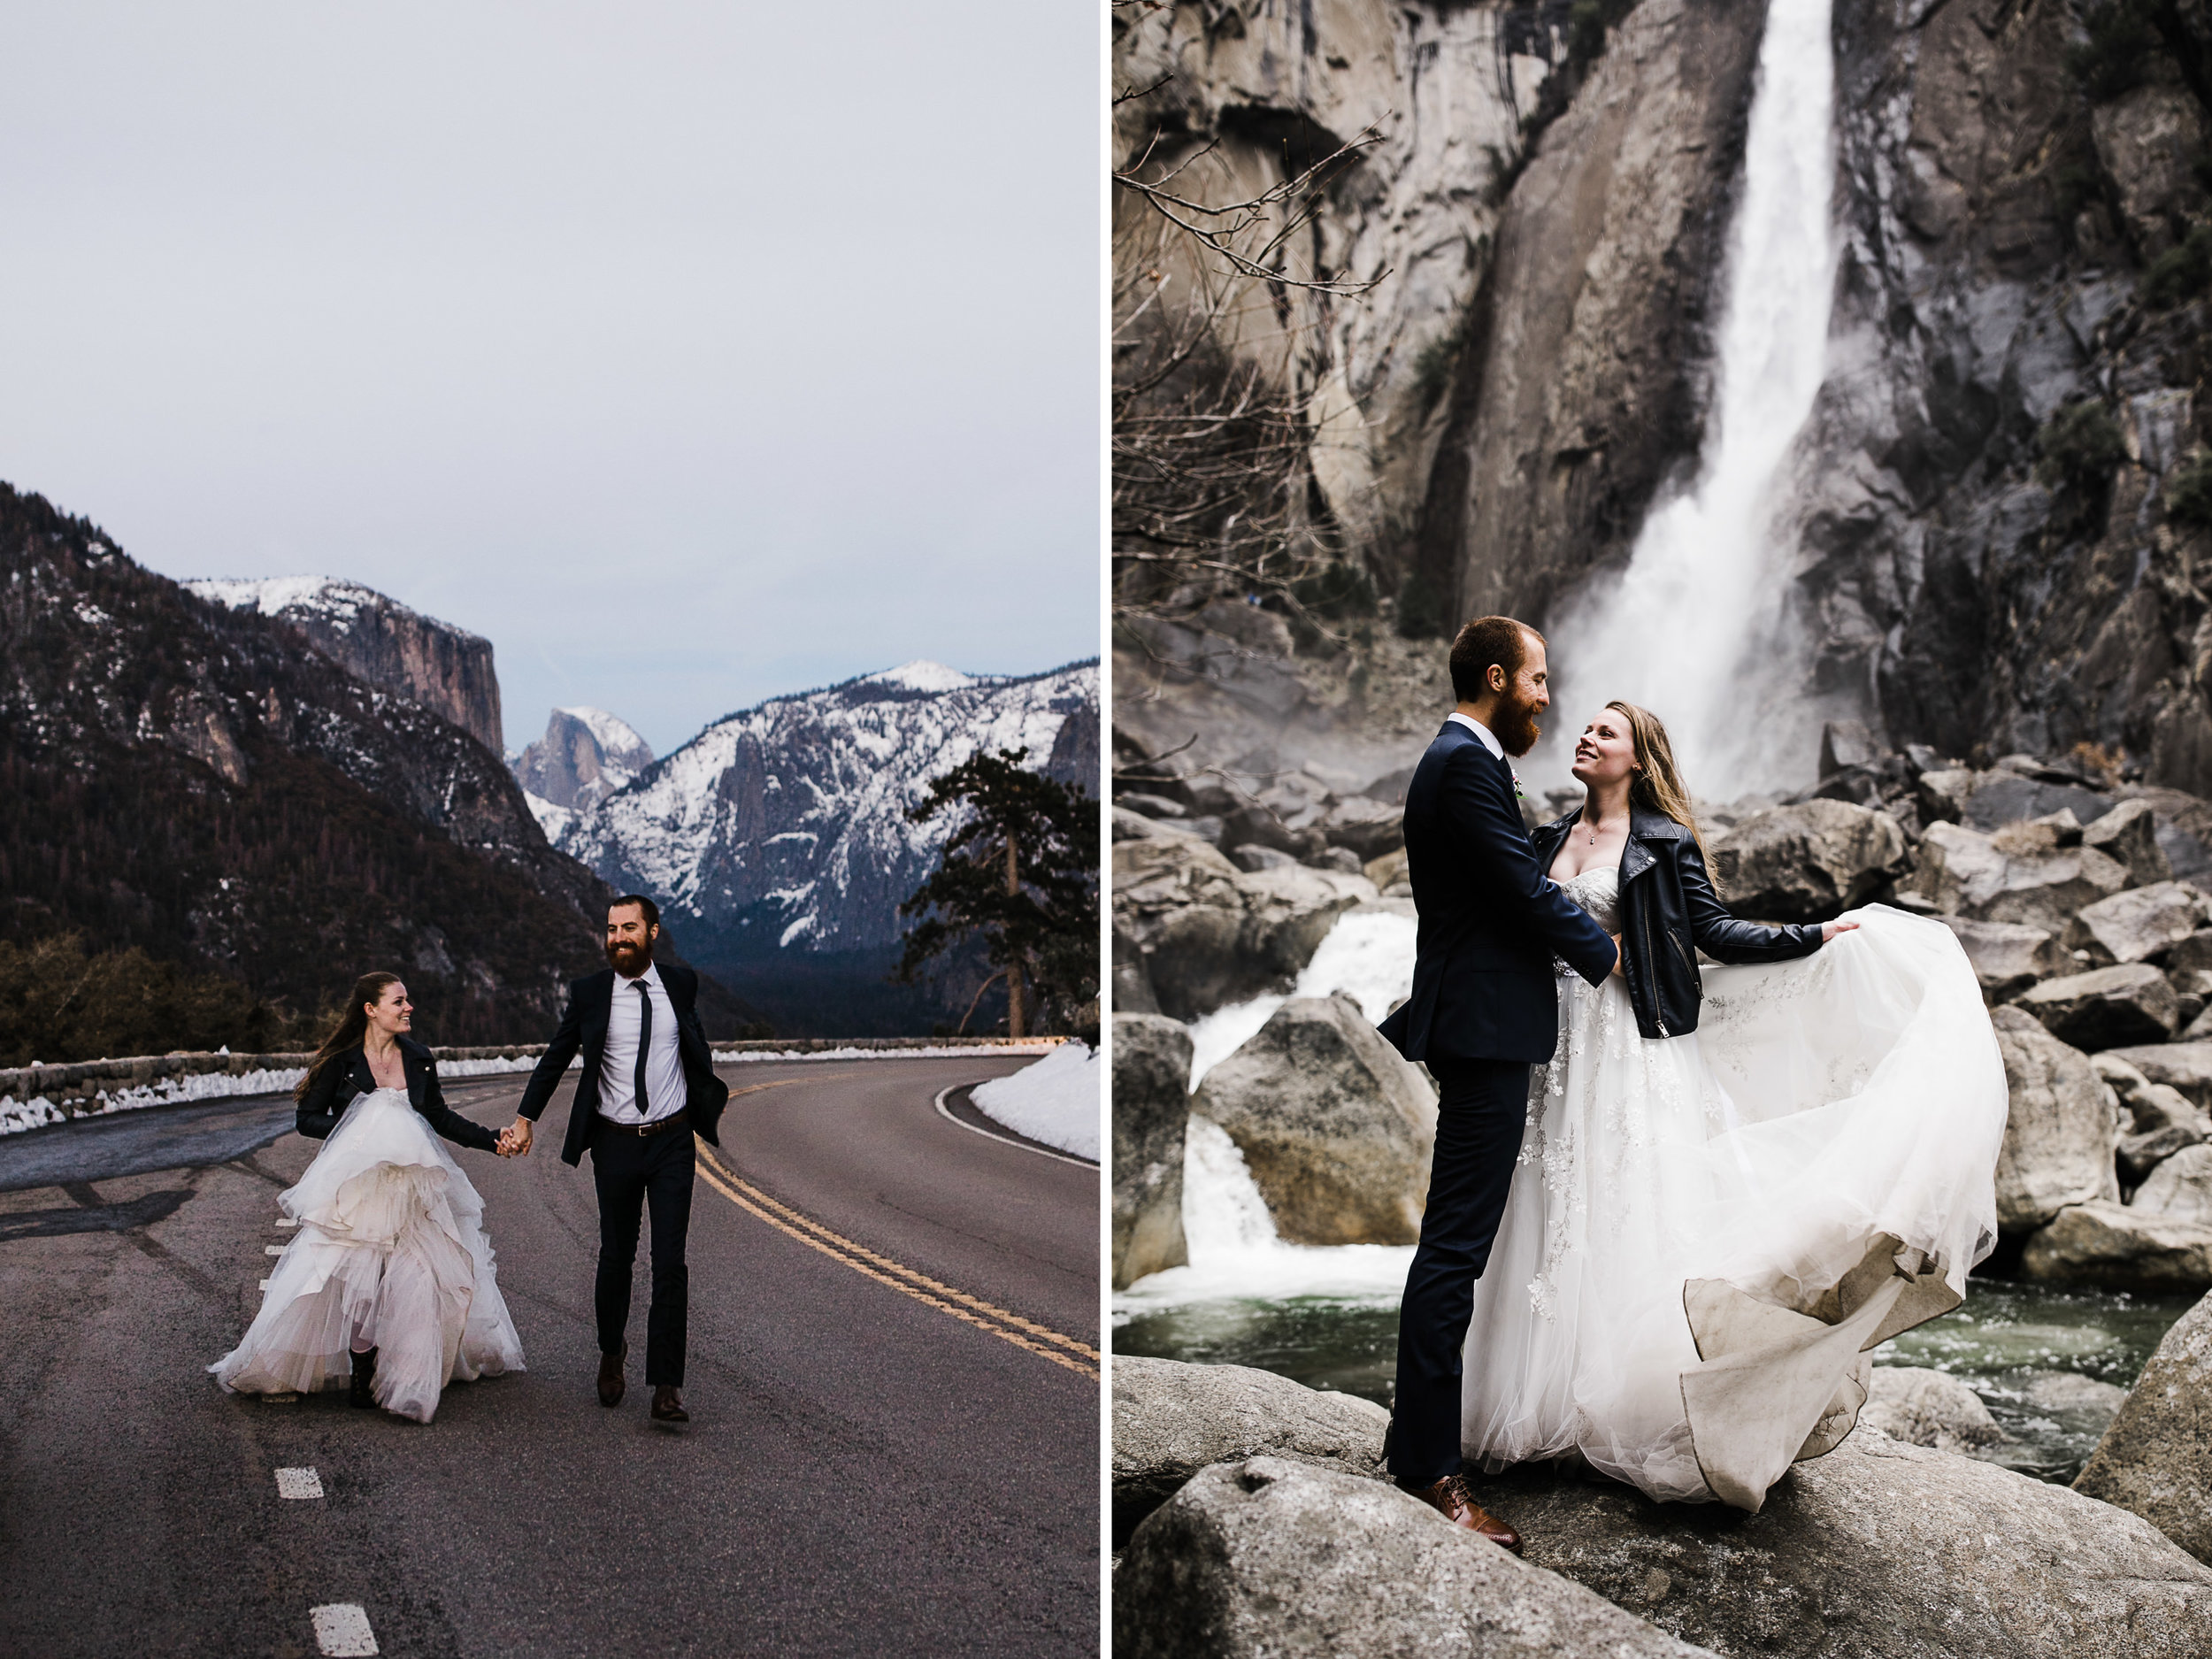 winter elopement ceremony in yosemite national park | The Hearnes Adventure Photography